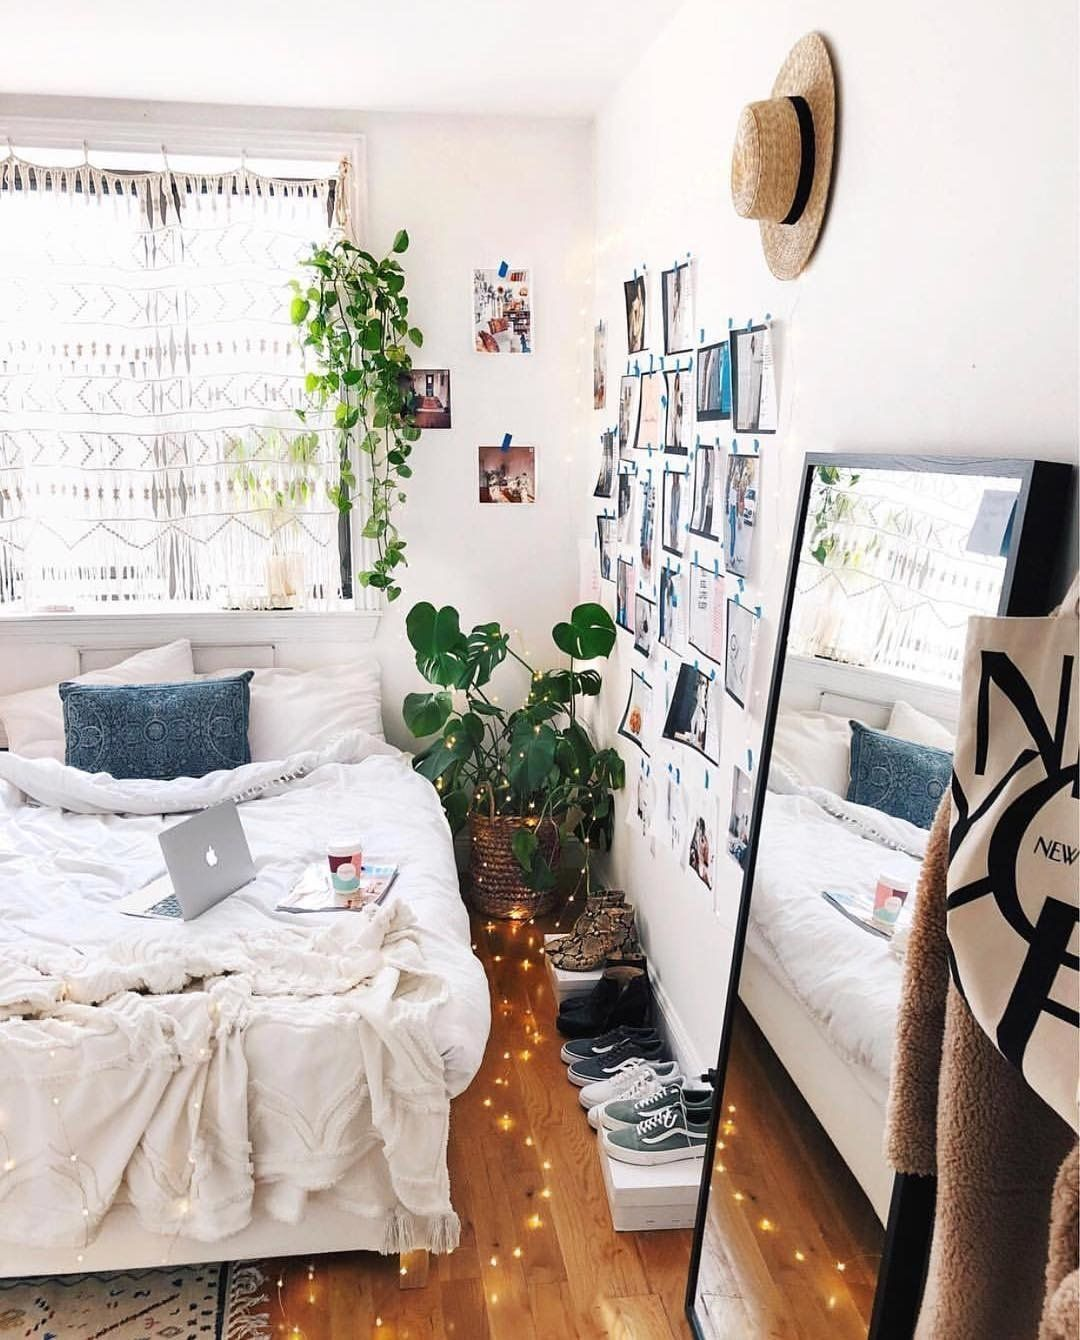 25 Small Bedroom Ideas That Are Look Stylishly Space Saving: 37 Urban Outfitters Bedroom Ideas